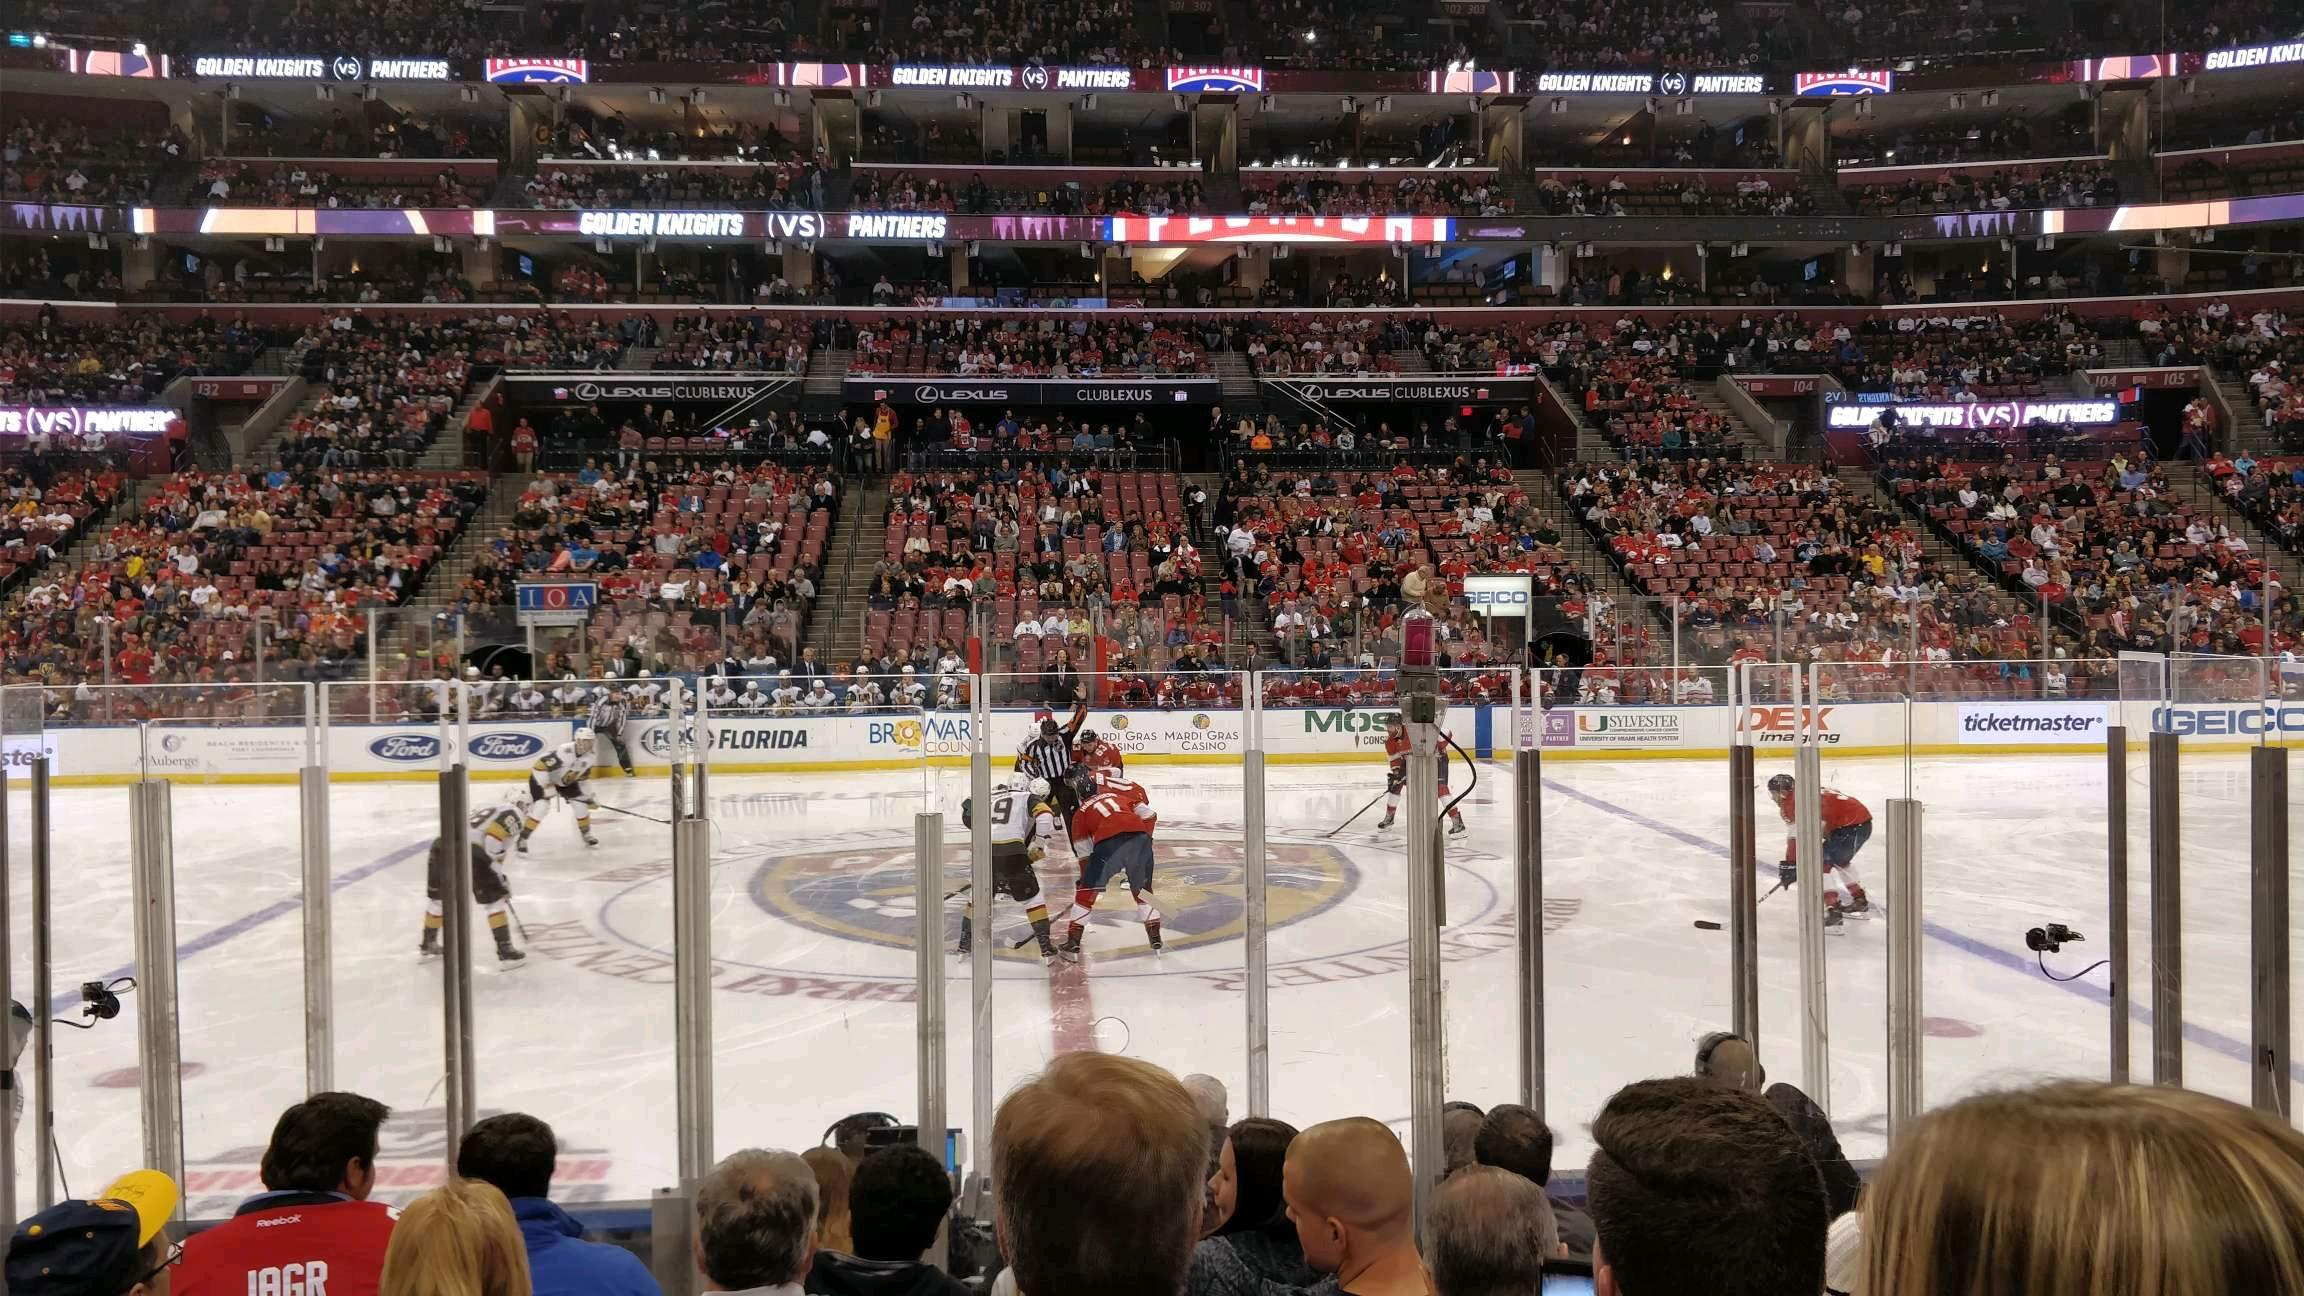 BB&T Center Section 118 Row 8 Seat 7